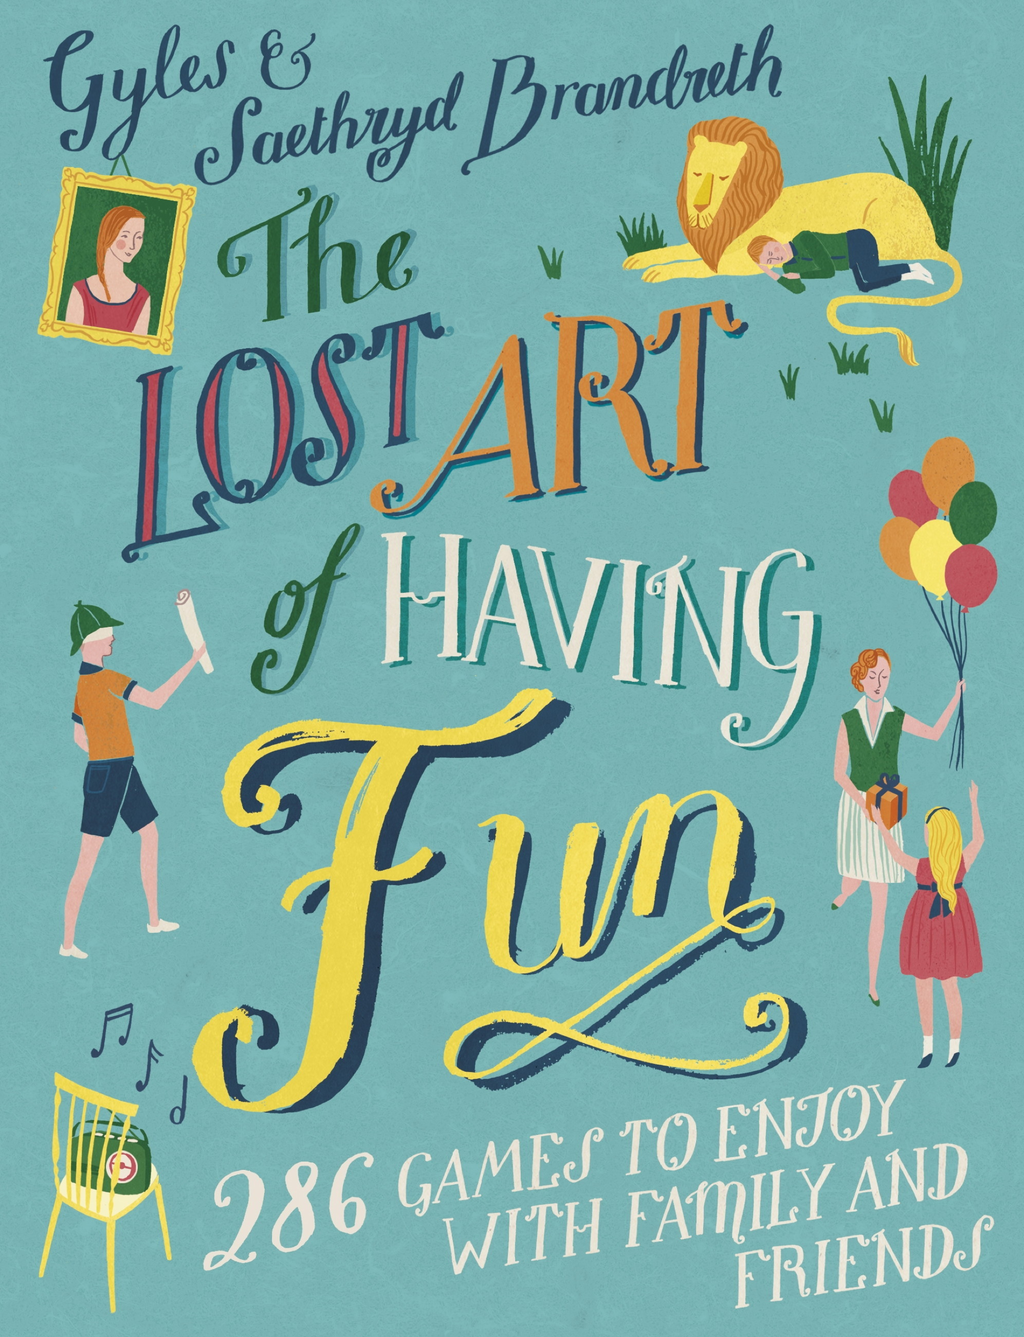 The Lost Art of Having Fun 286 Games to Enjoy with Family and Friends